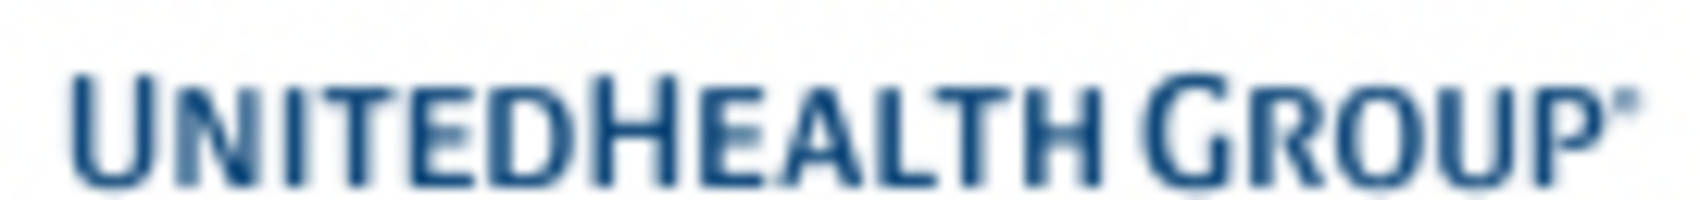 """fortune survey rates unitedhealth group """"world's most admired company"""" in insurance and managed care for 2017"""